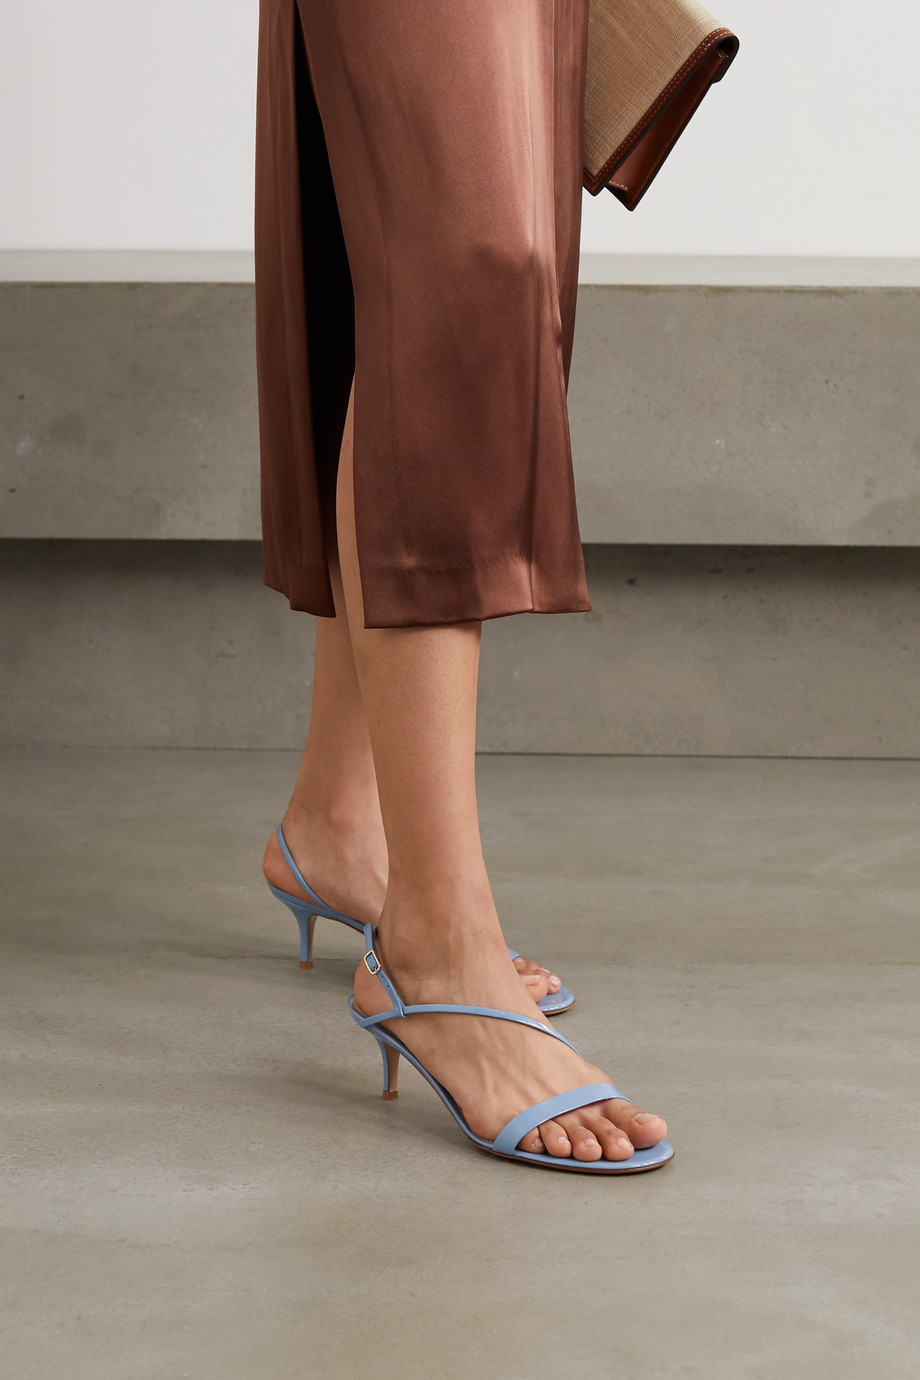 Gianvito Rossi Manhattan 55 patent-leather sandals